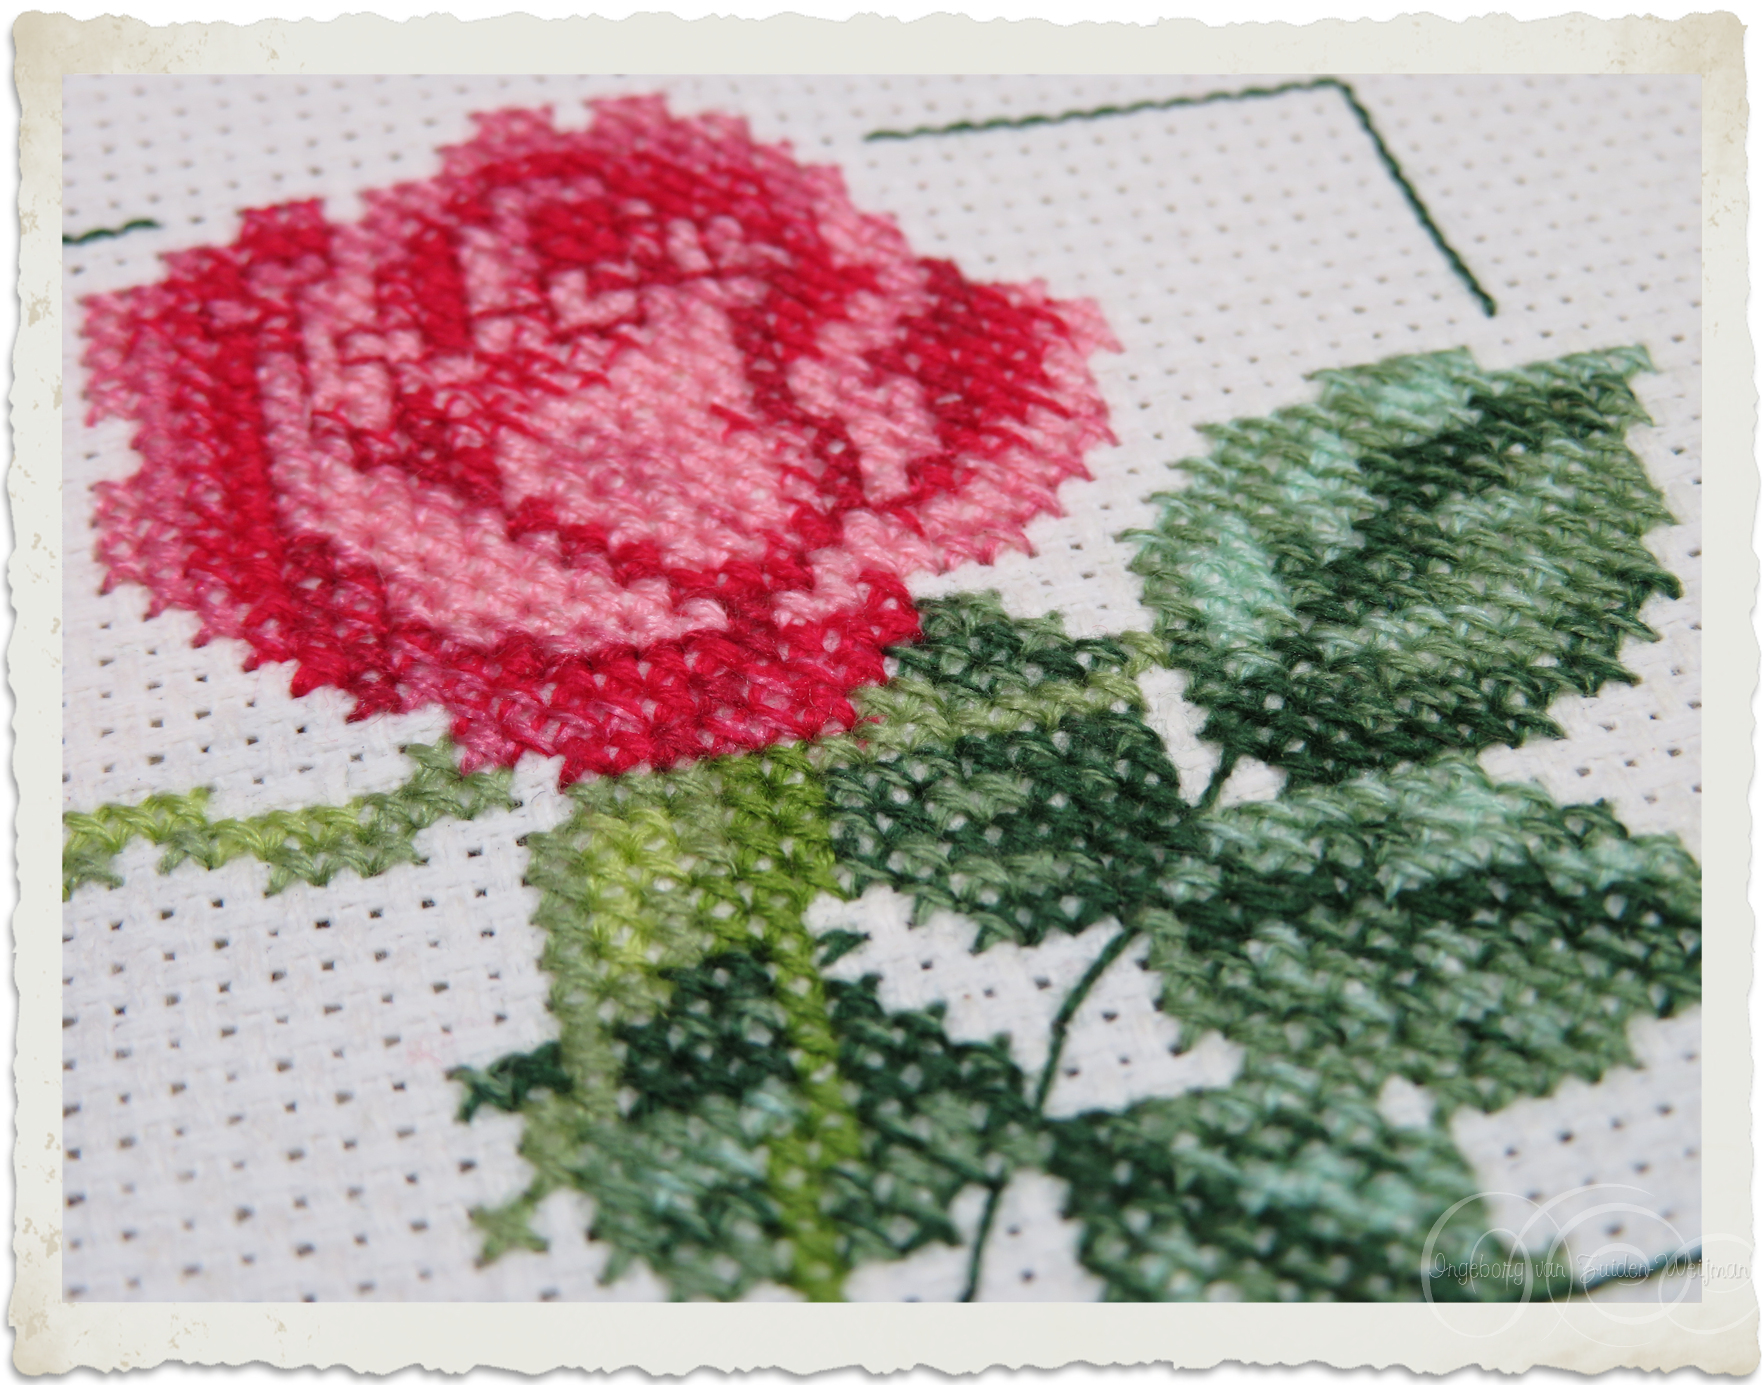 Red Rose in cross-stitch by Ingeborg van Zuiden